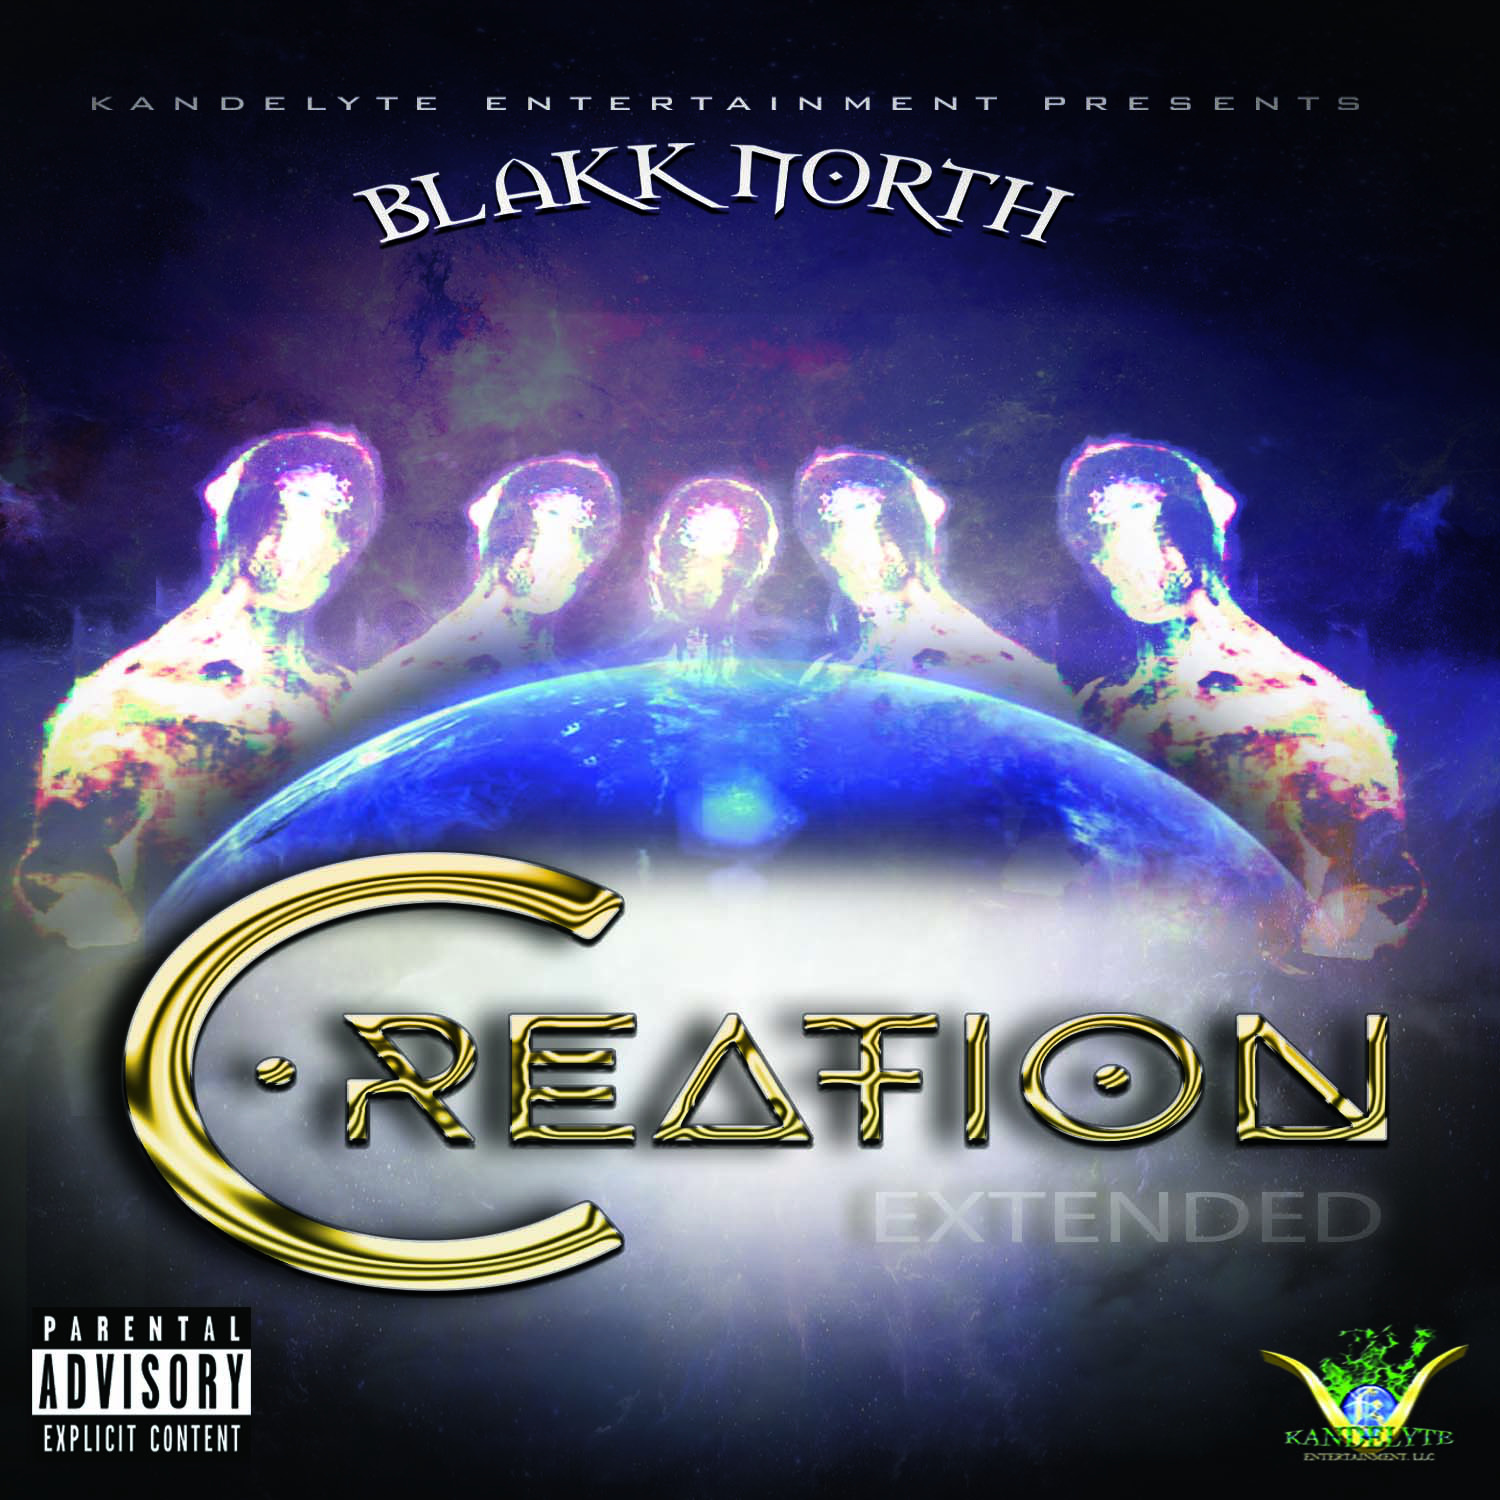 CREATION EXTEDED ALBUM FRONT